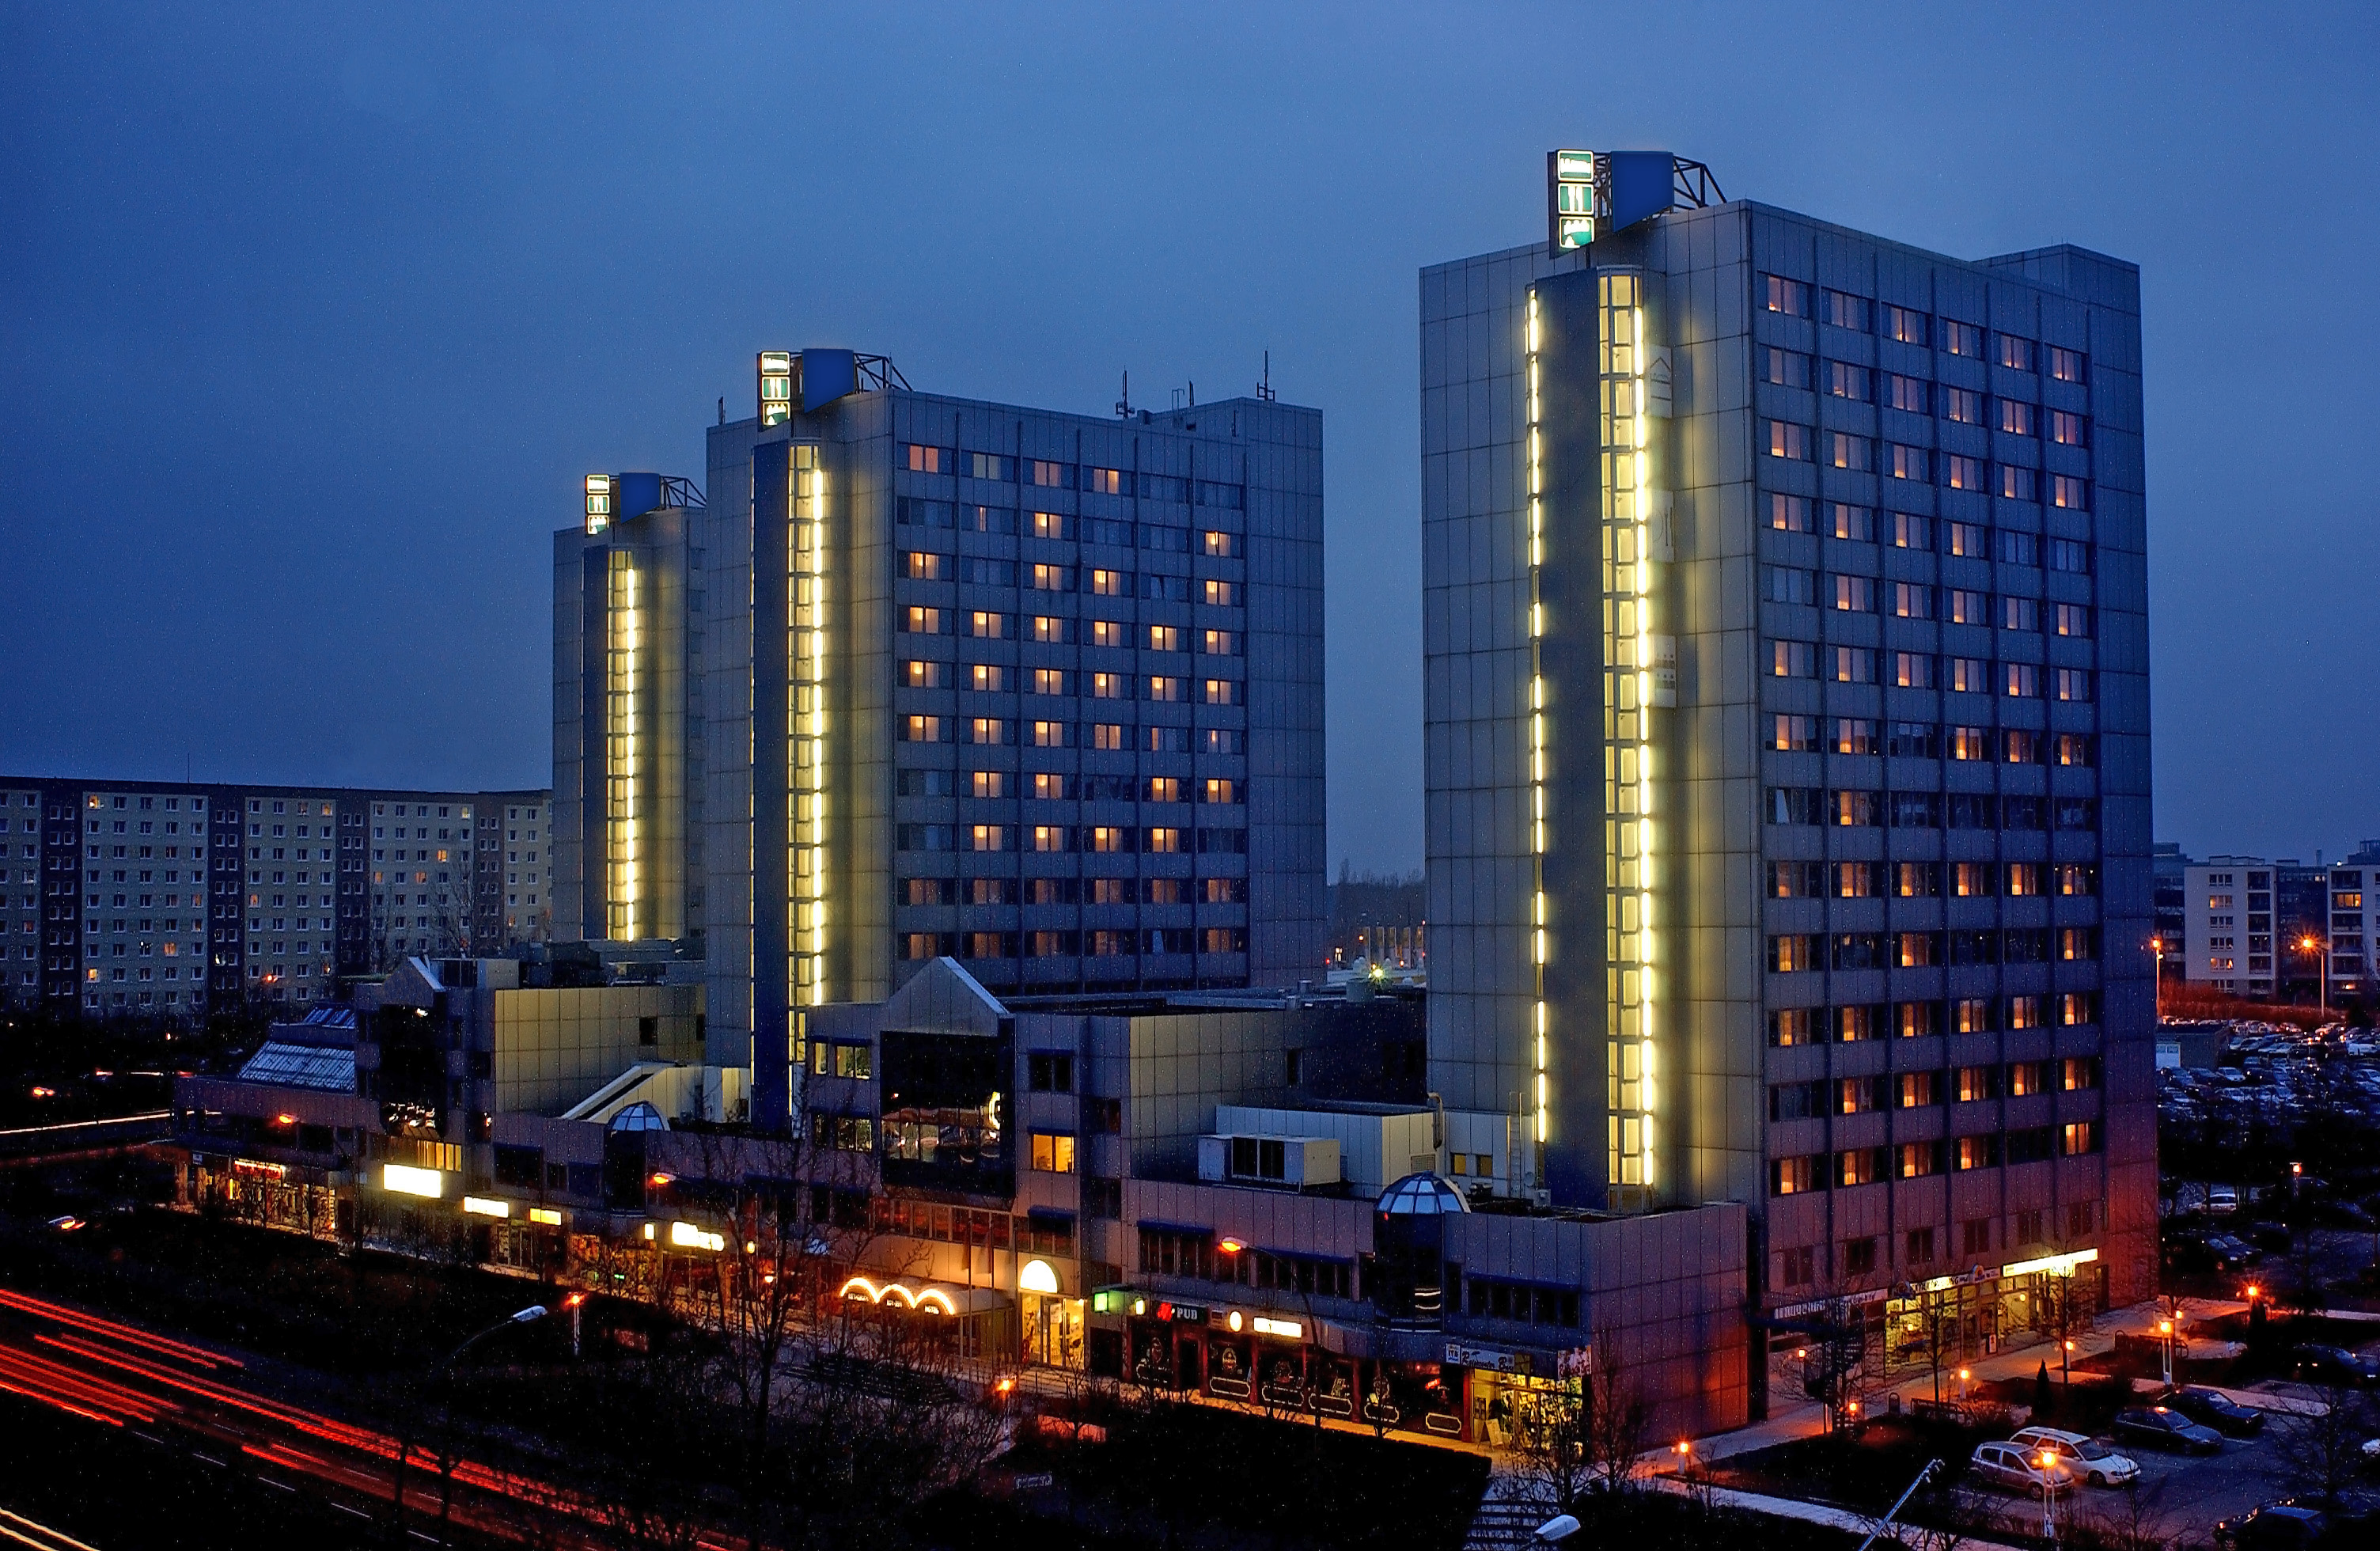 Hotel Berlin East Landsberger Allee